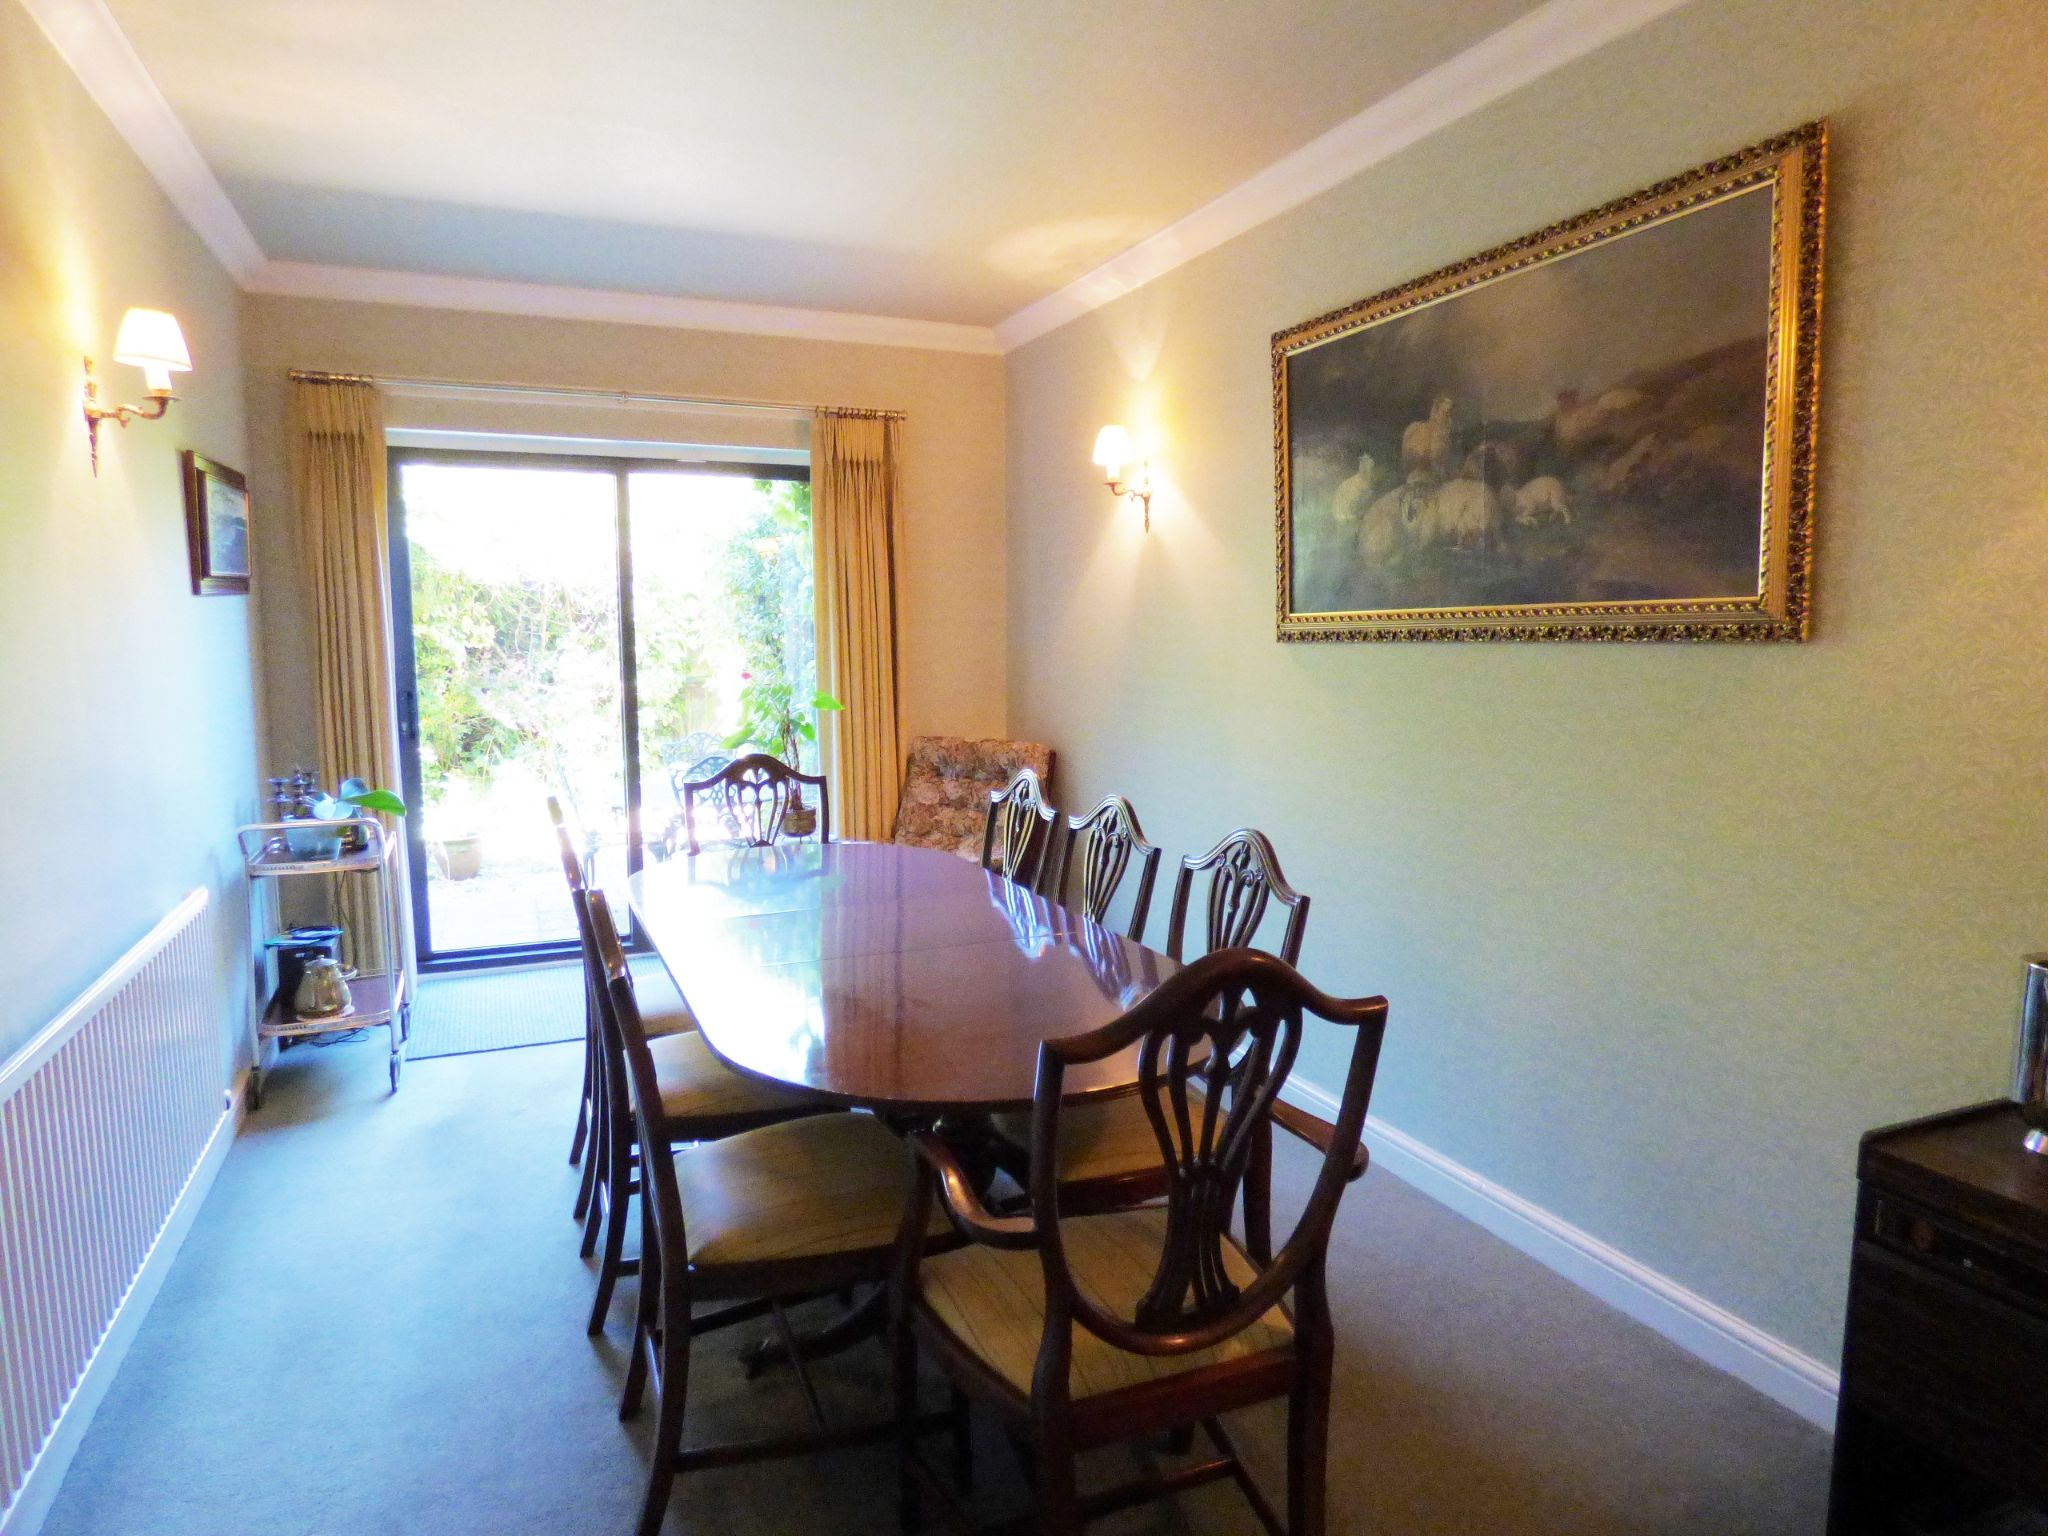 5 Bedroom Mews House For Sale - Photograph 9